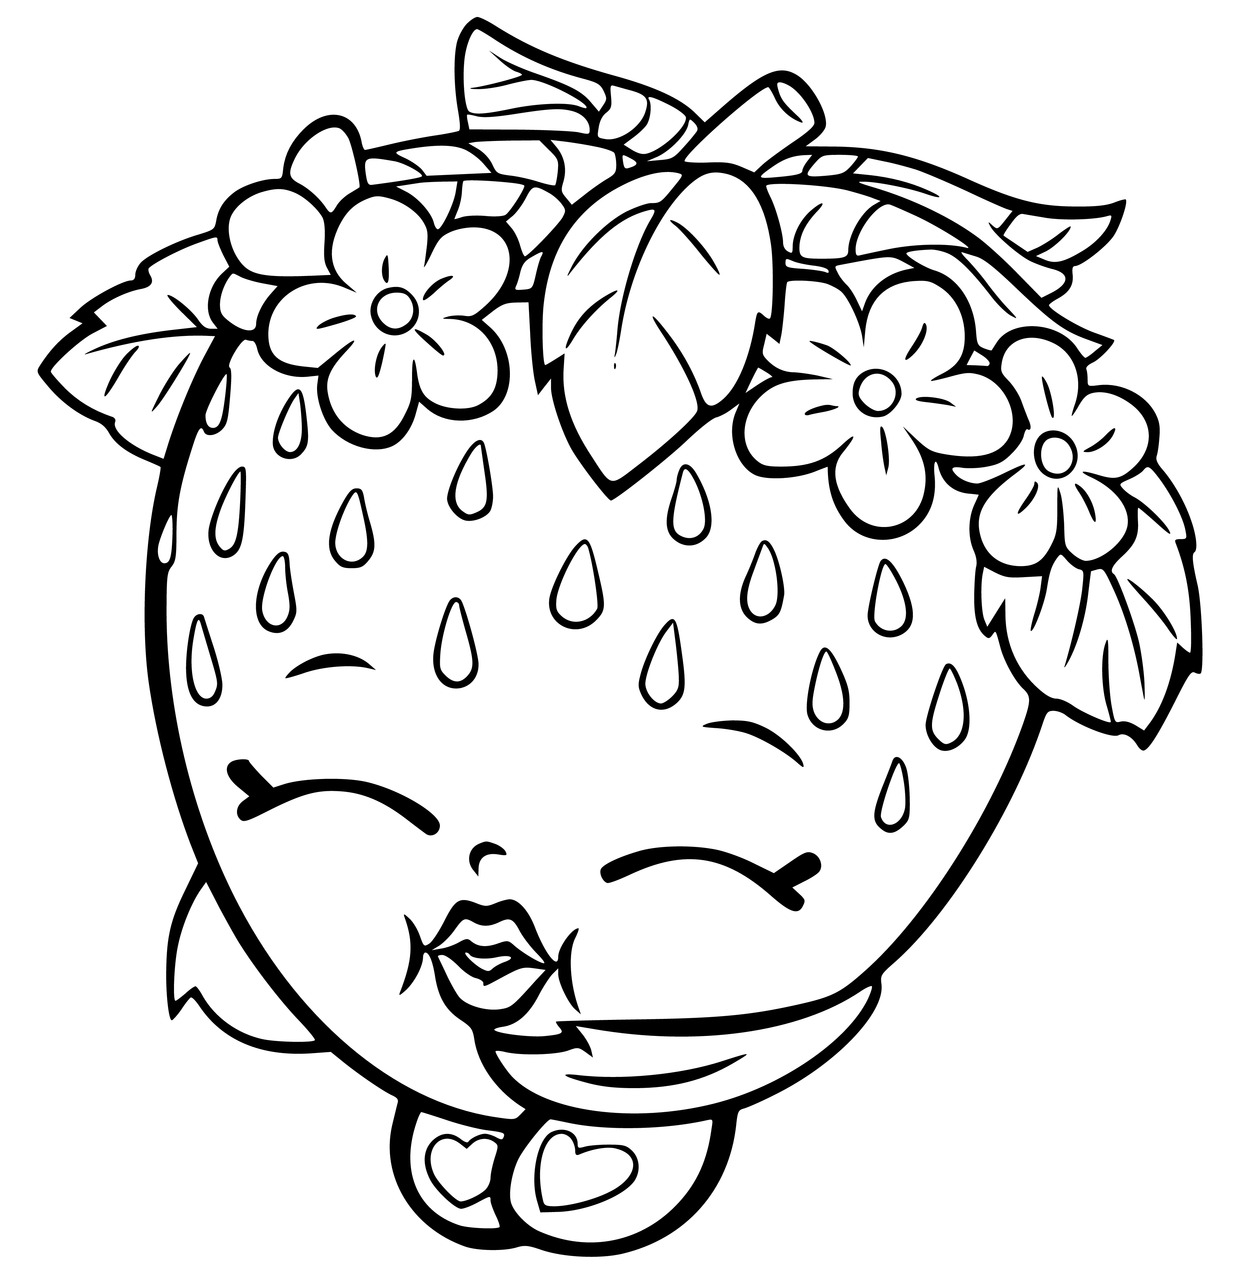 colouring picture of strawberry strawberry colouring page part 5 free resource for strawberry picture colouring of